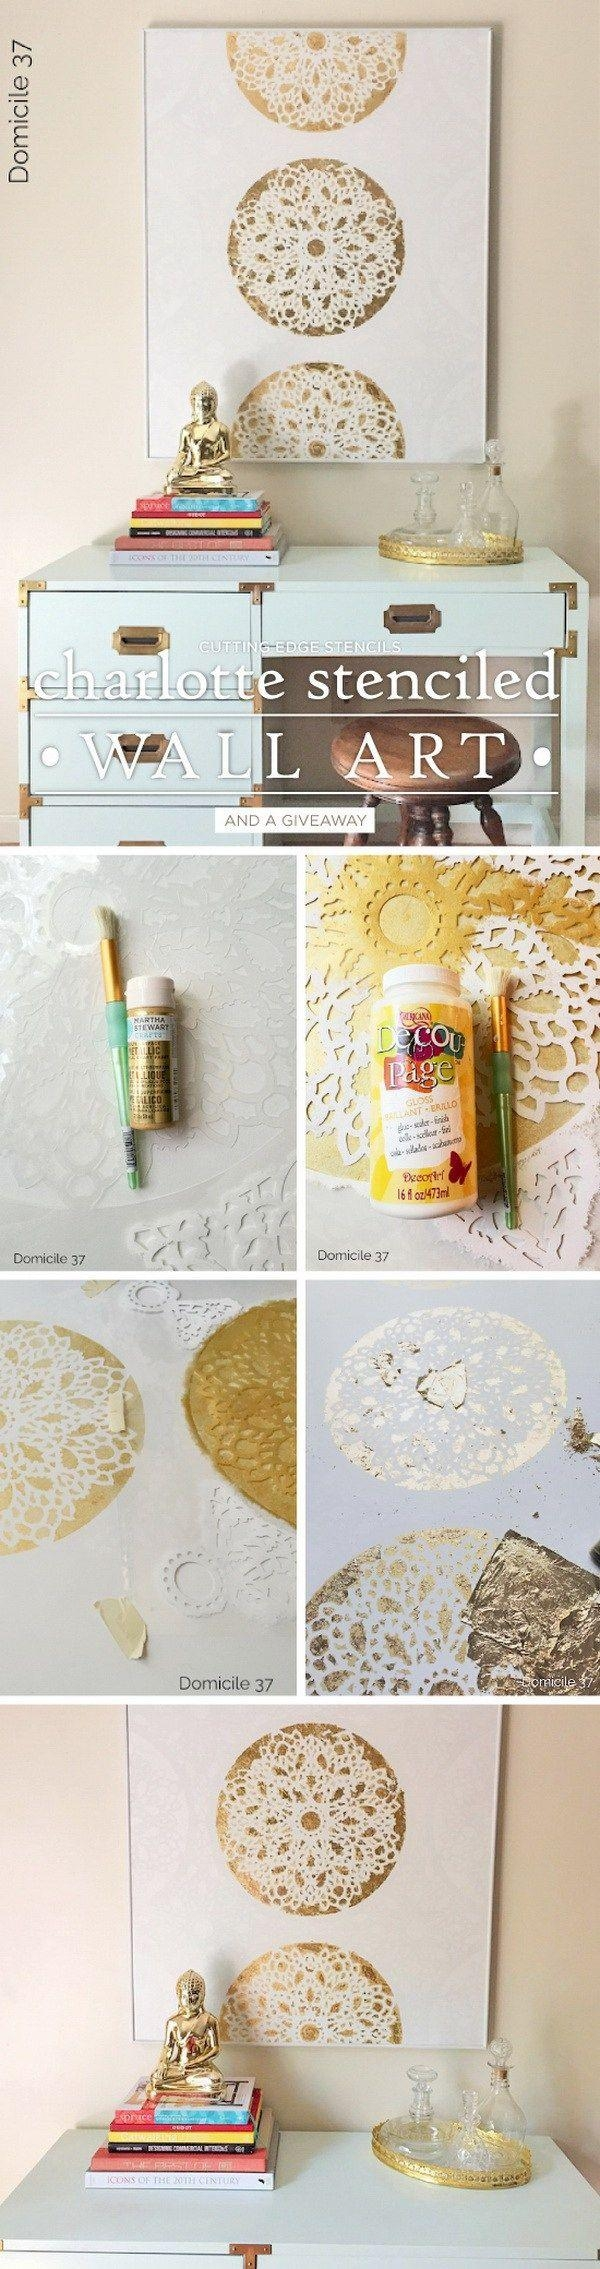 Best 25+ Fabric Wall Art Ideas On Pinterest | Large Wall Art Within Styrofoam Wall Art (Image 6 of 20)